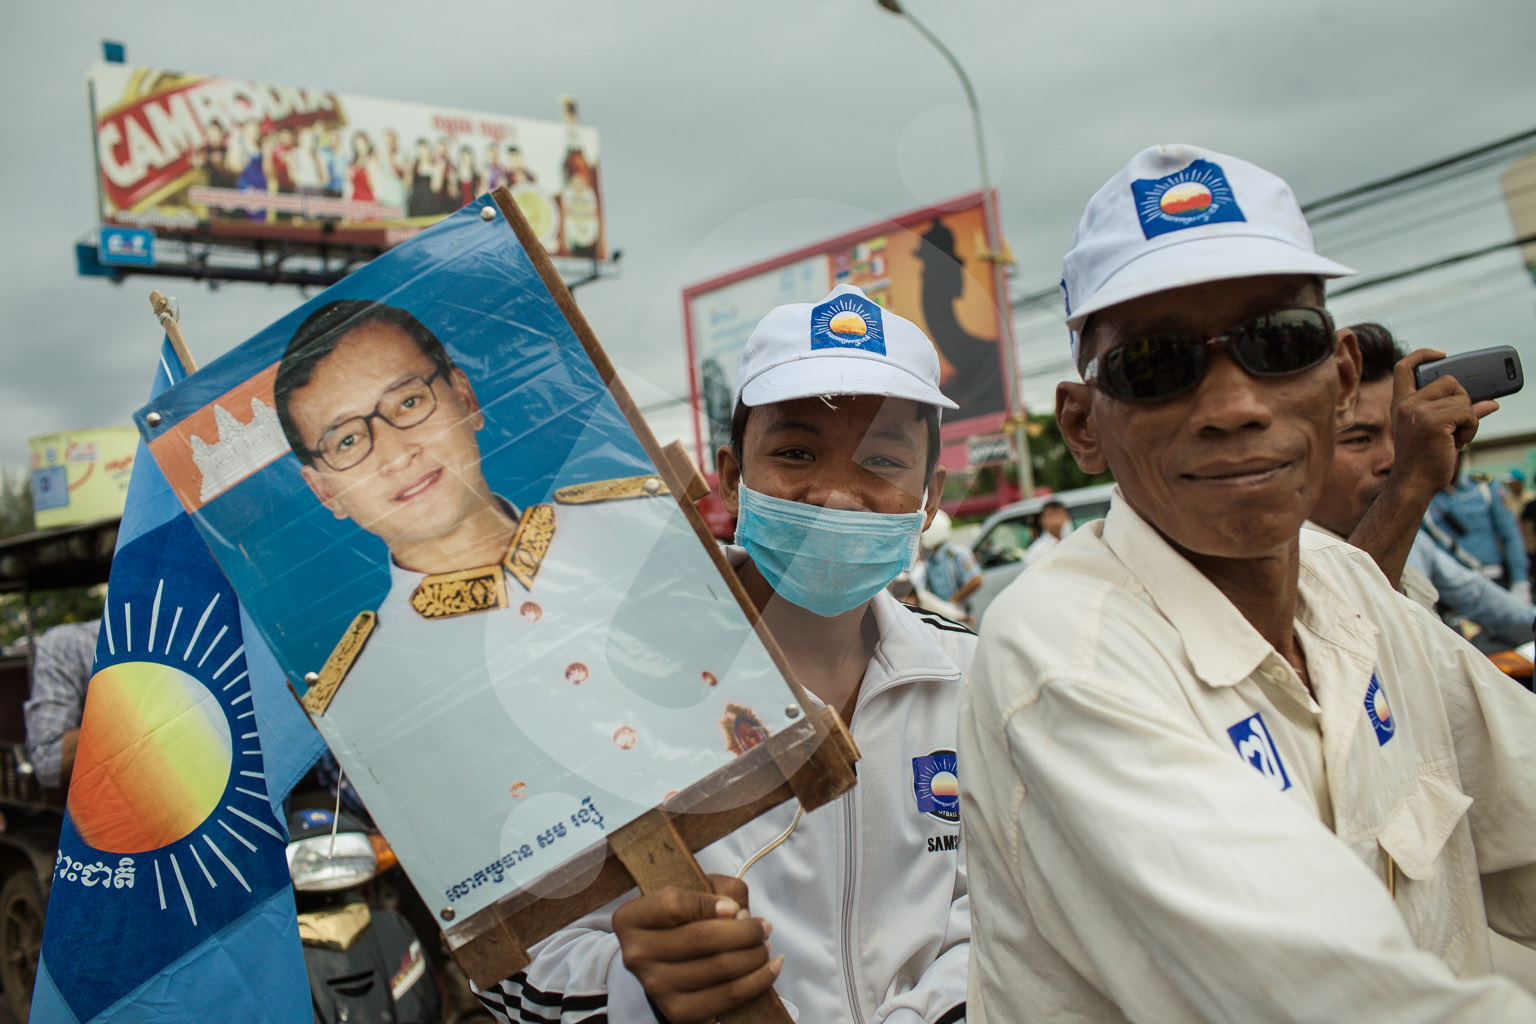 Supporters of the CNRP (Cambodia National Rescue League) wait the arrival of their leader, Sam Rainsy, at the airport of Phnom Penh.